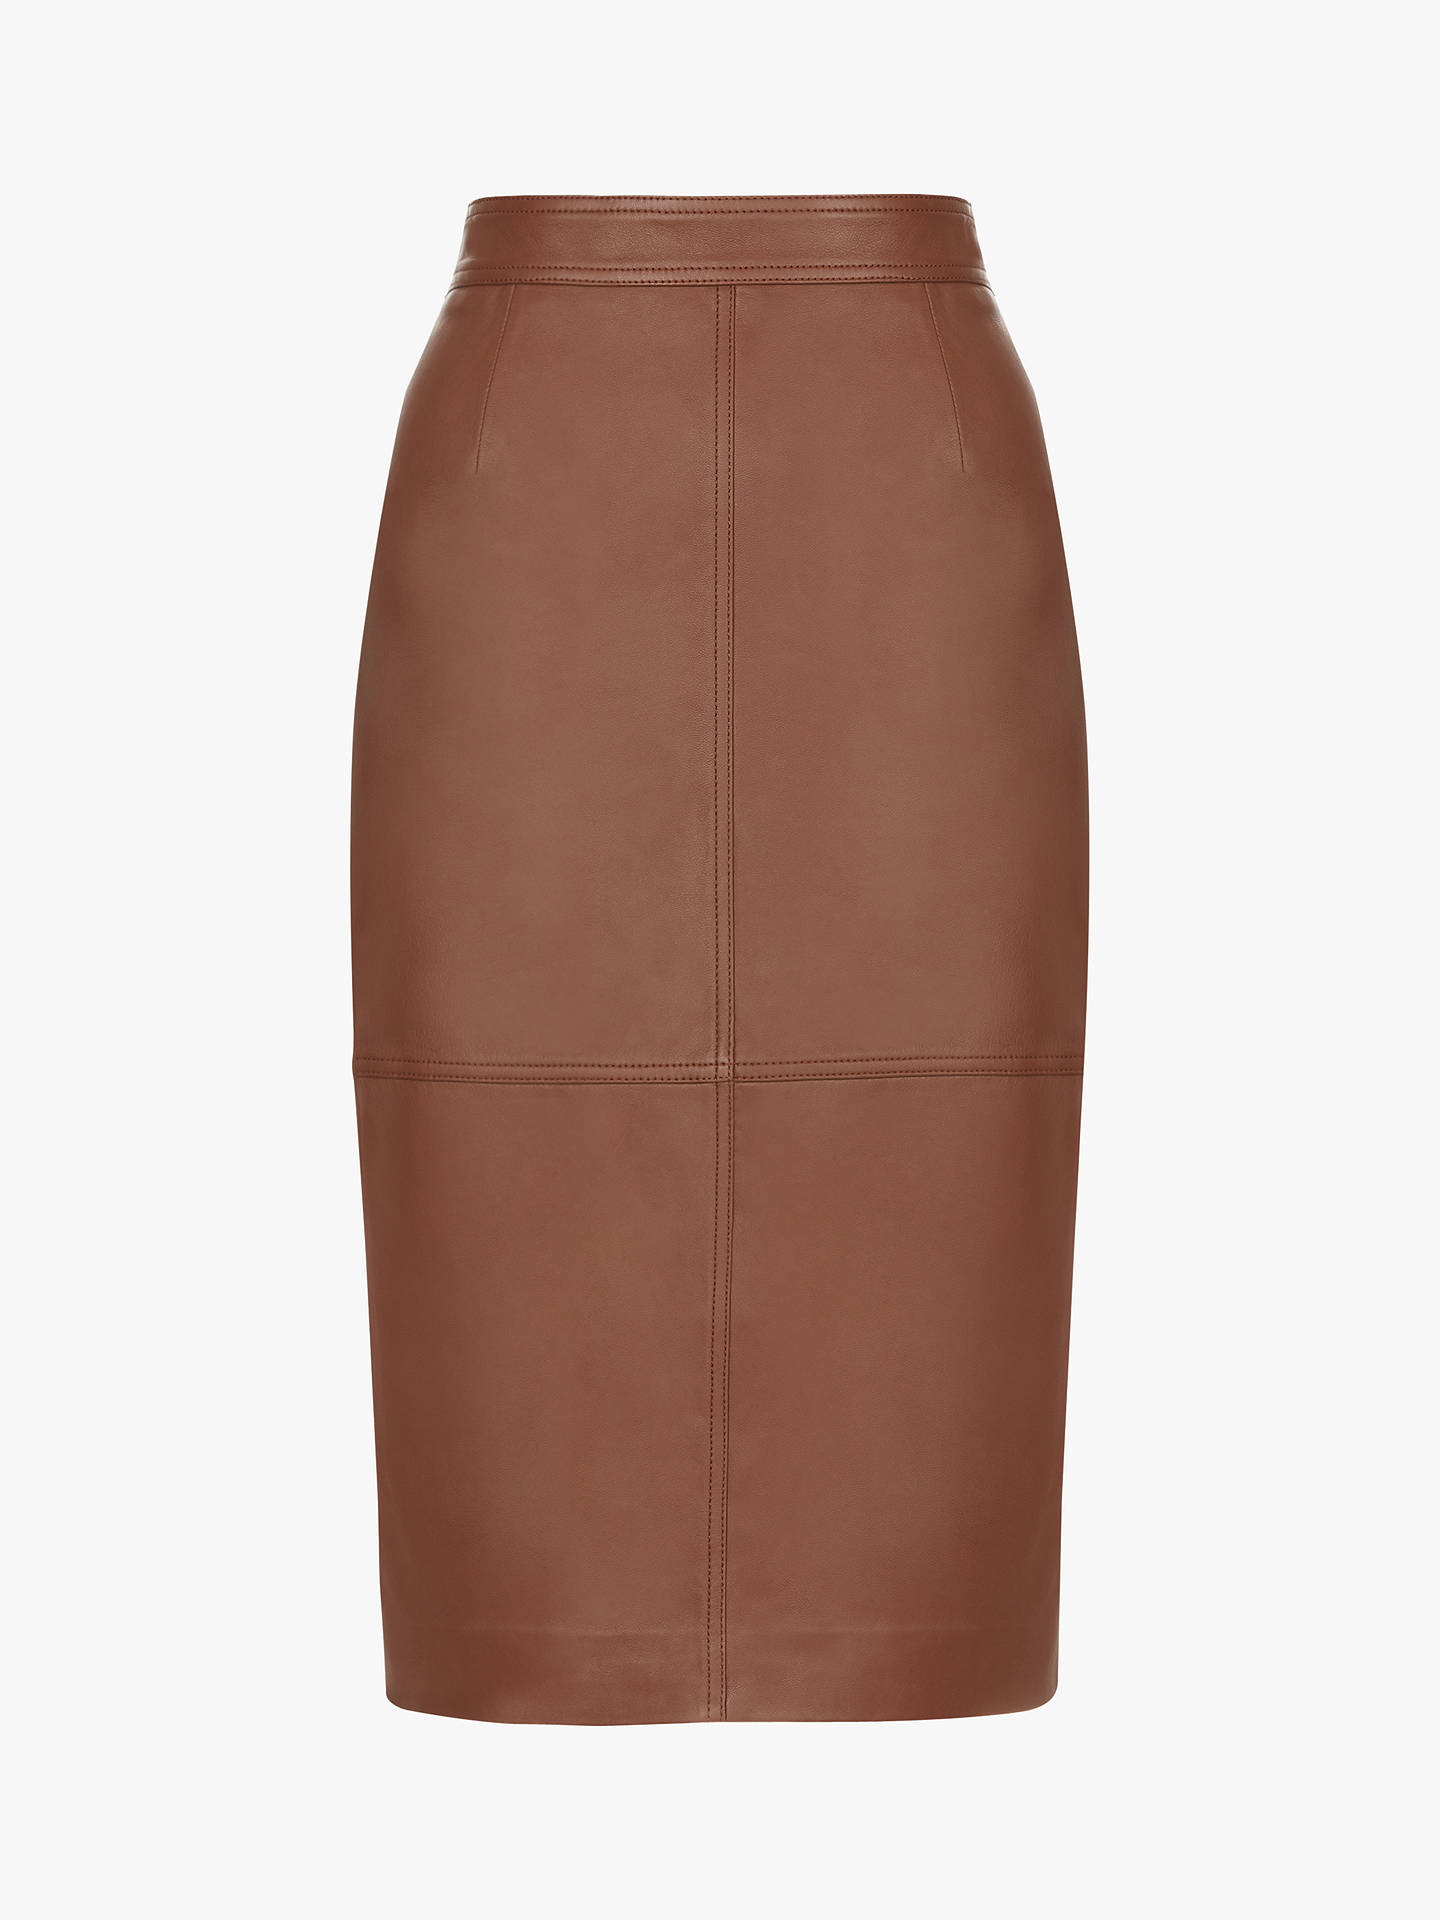 Buy Hobbs Thea Leather Skirt, Tan, 8 Online at johnlewis.com